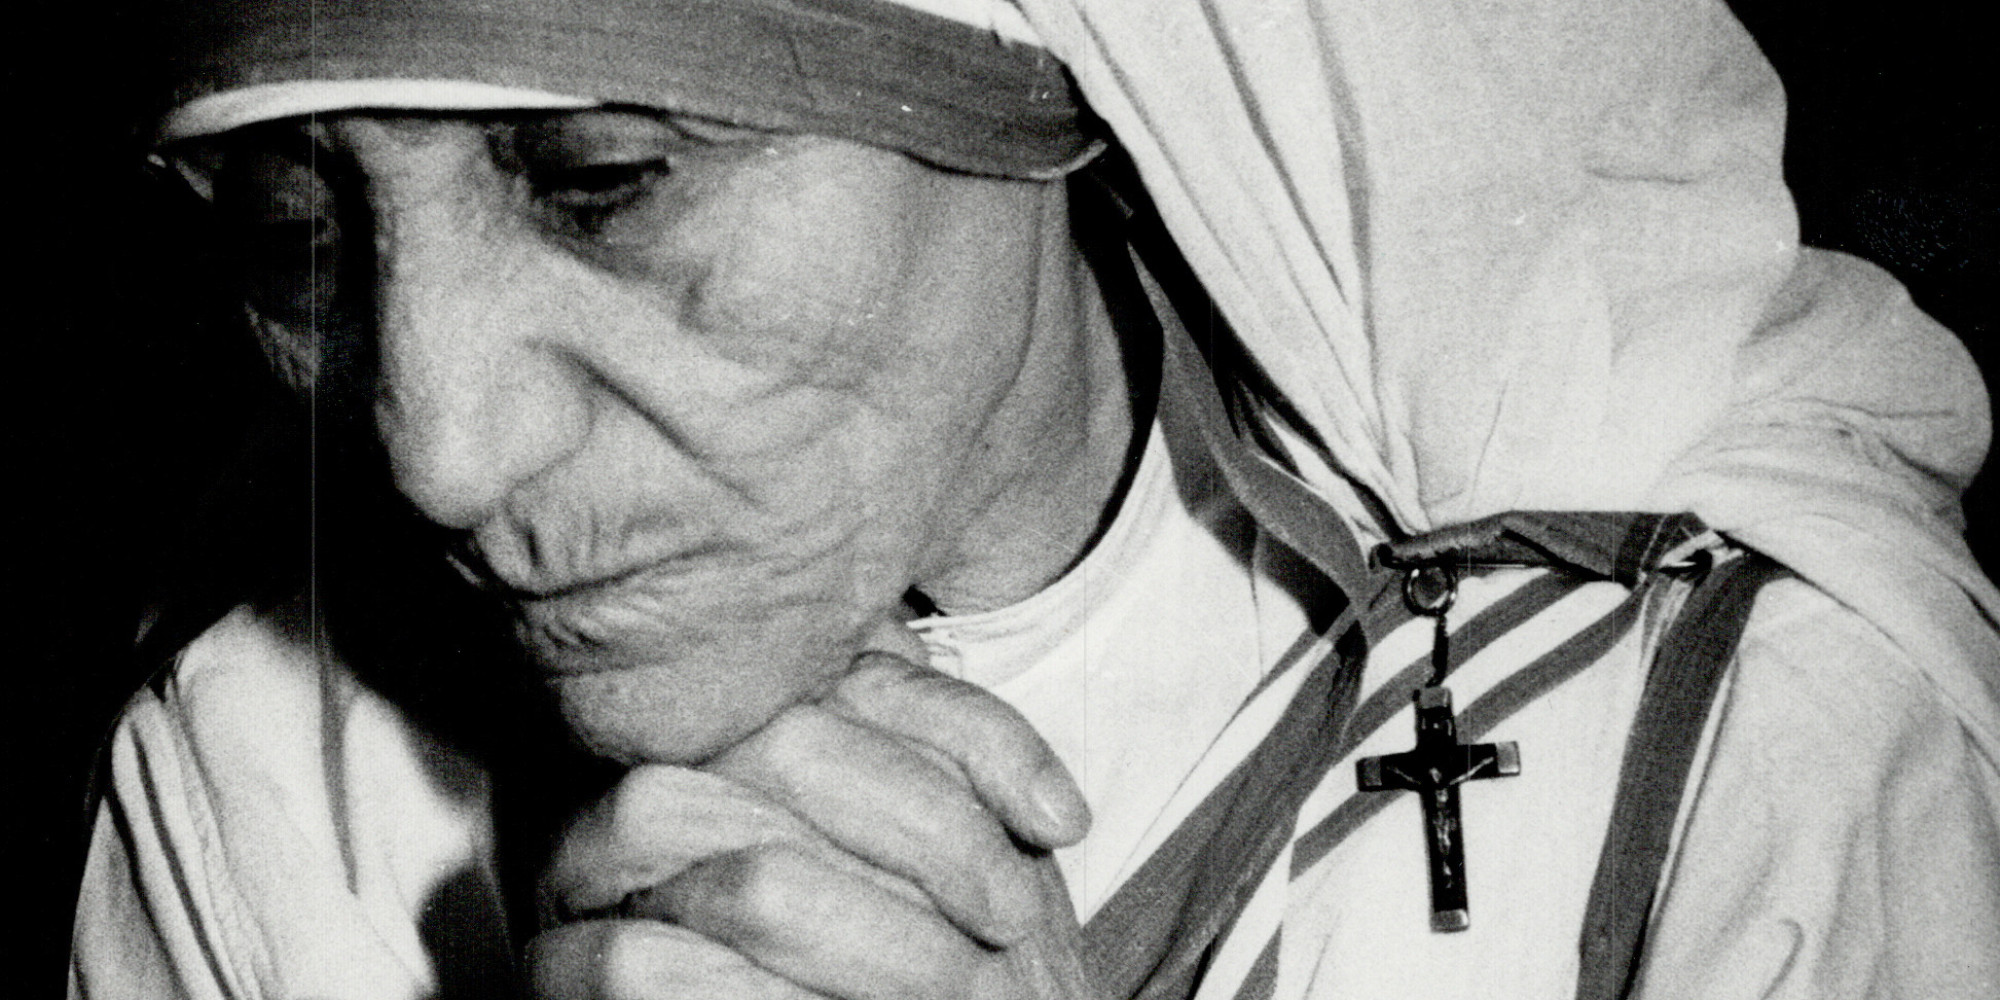 Mother Teresa: Saint or a Manipulative Sinner?